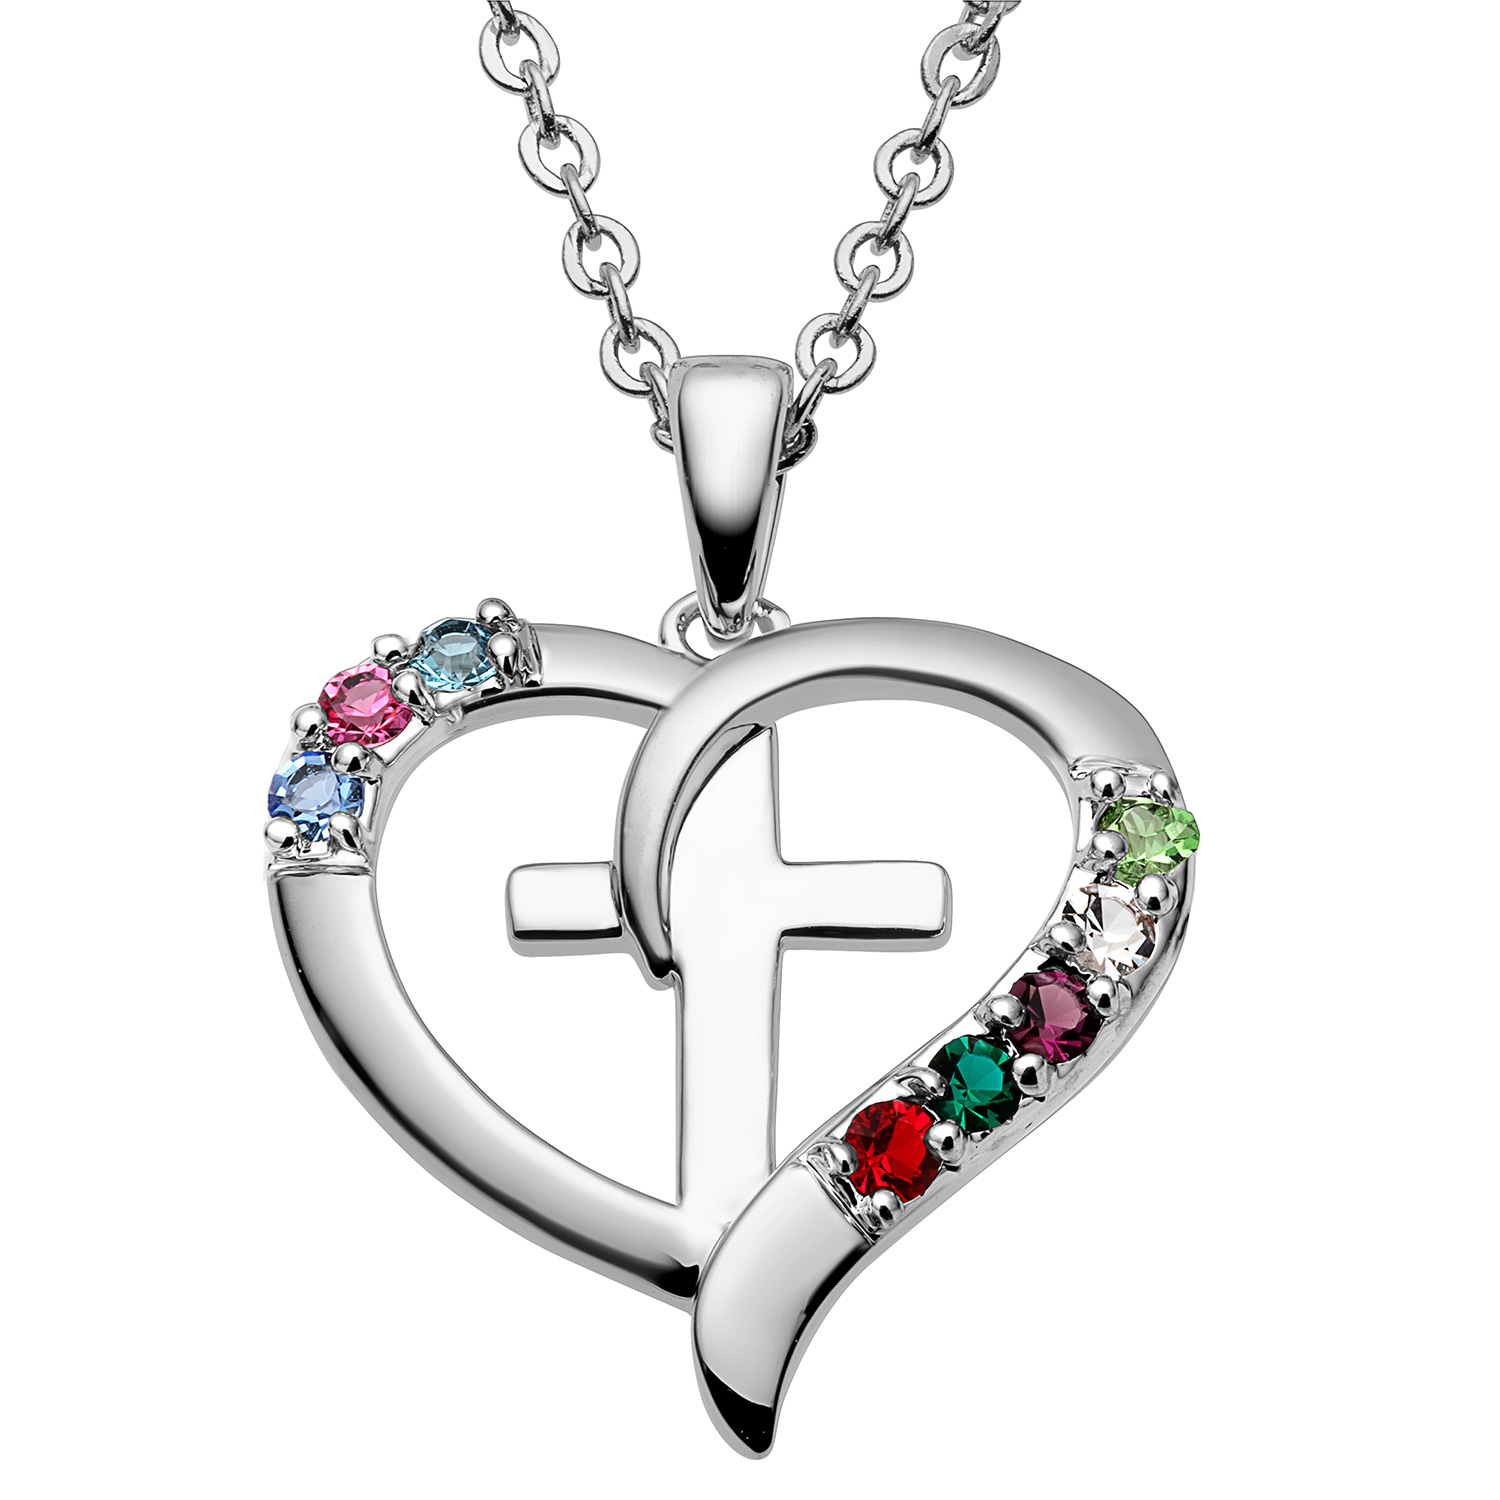 Personalized Sterling Silver or Gold over Sterling Family Heart and Cross Birthstone Pendant